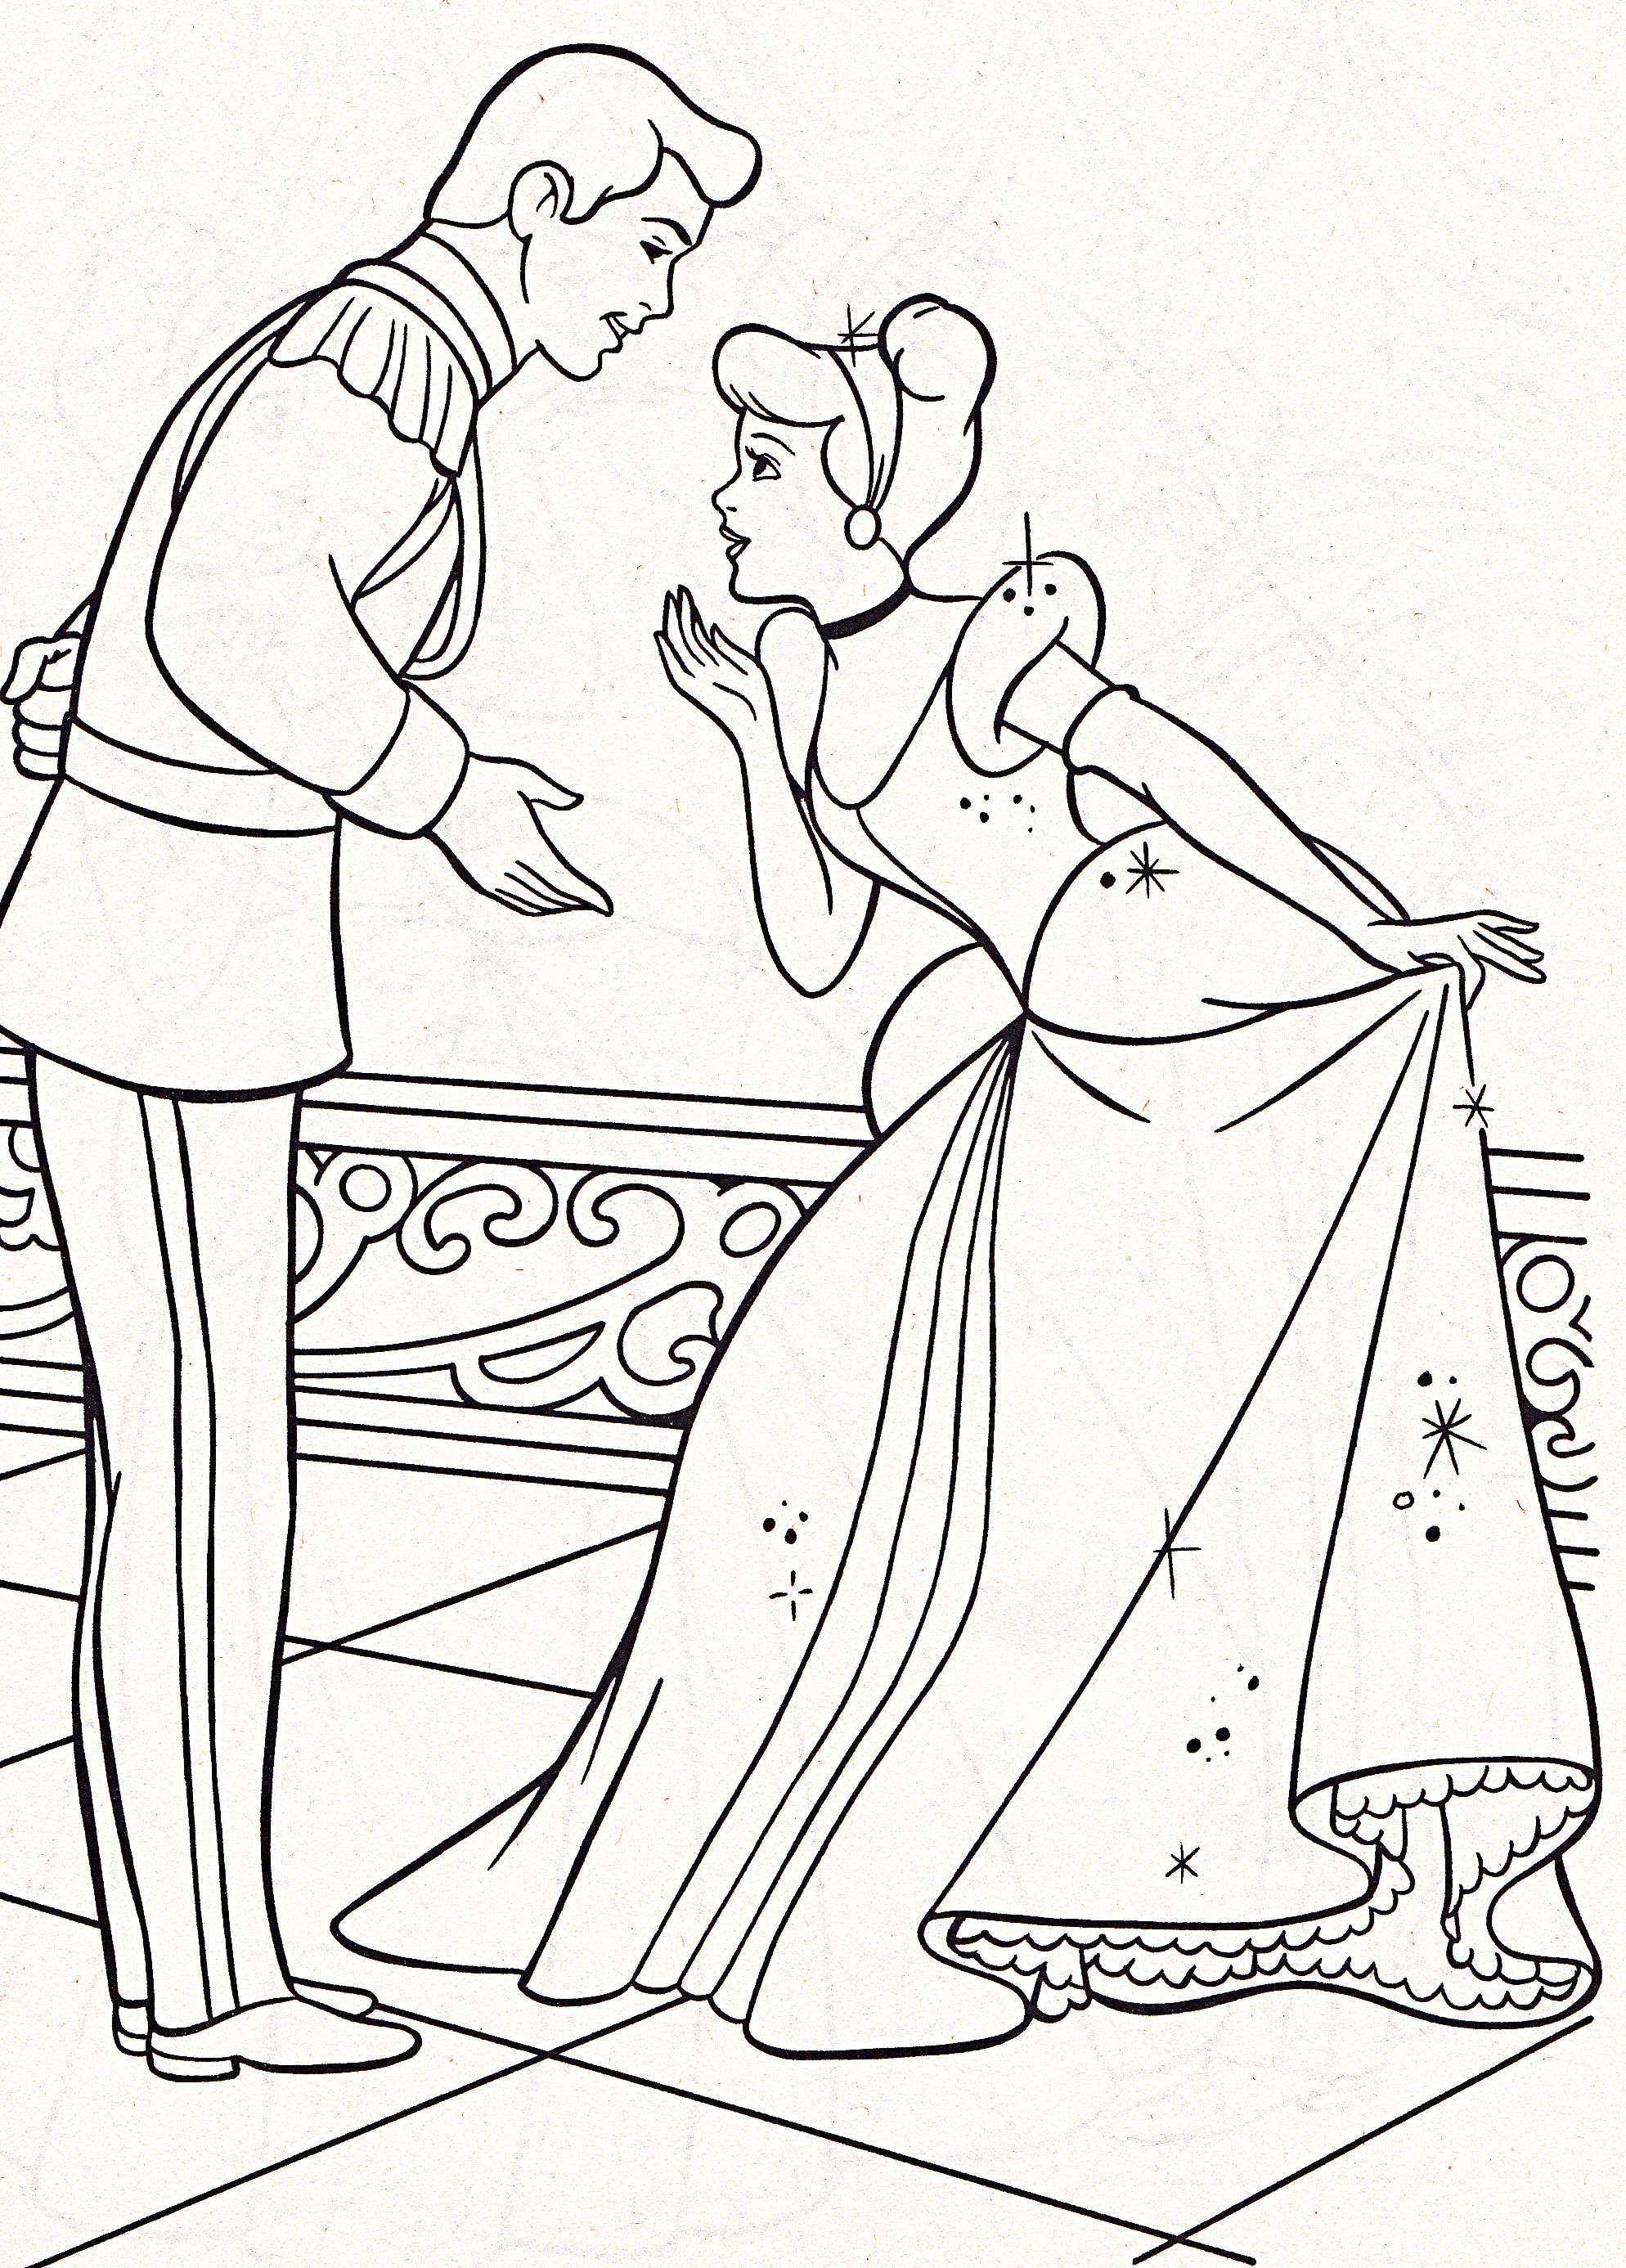 cinderella and prince coloring pages - Google Search | ♡ Disney ...